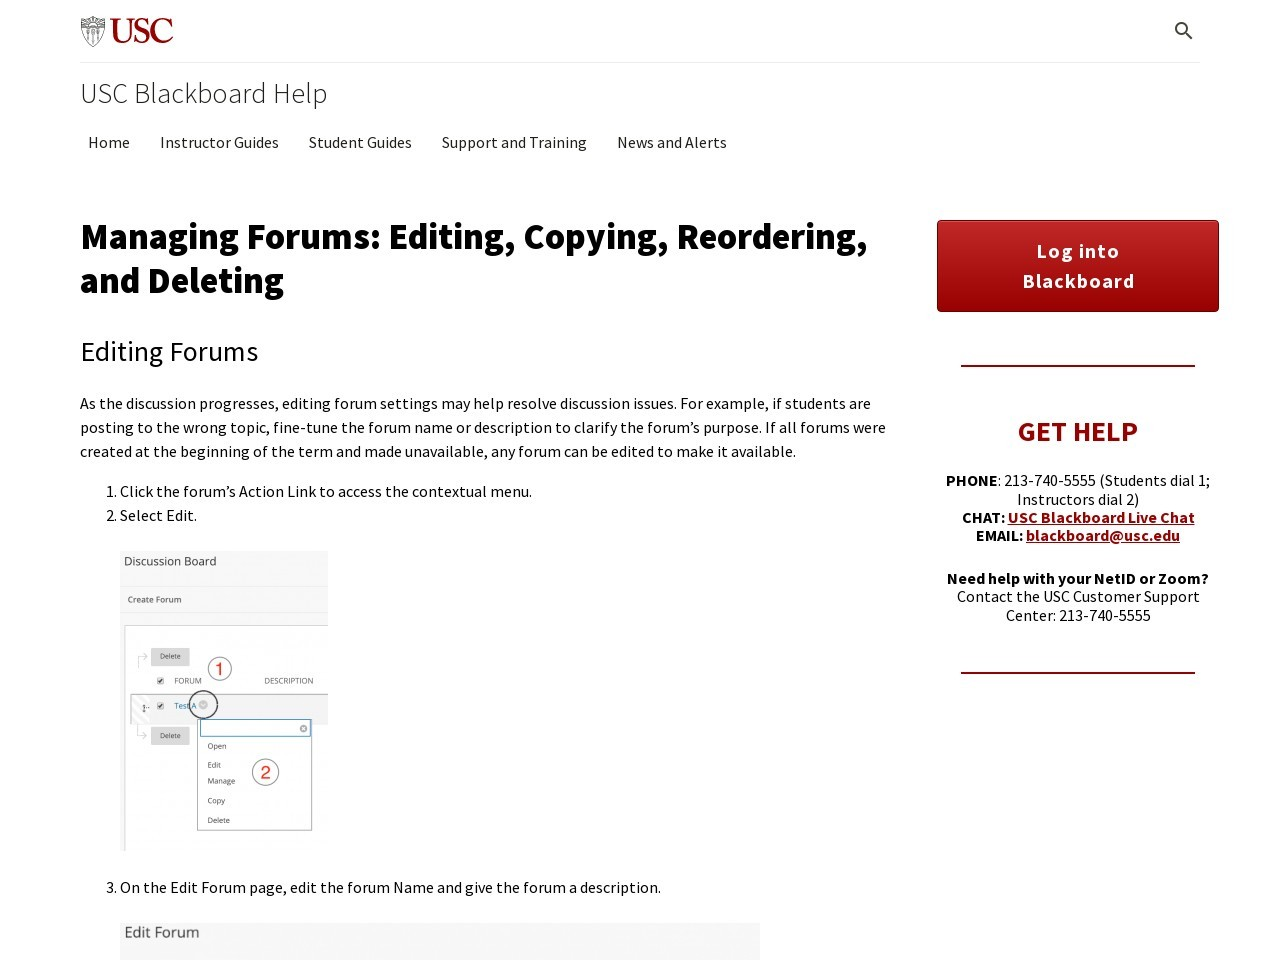 Managing Forums: Editing, Copying, Reordering, and Deleting